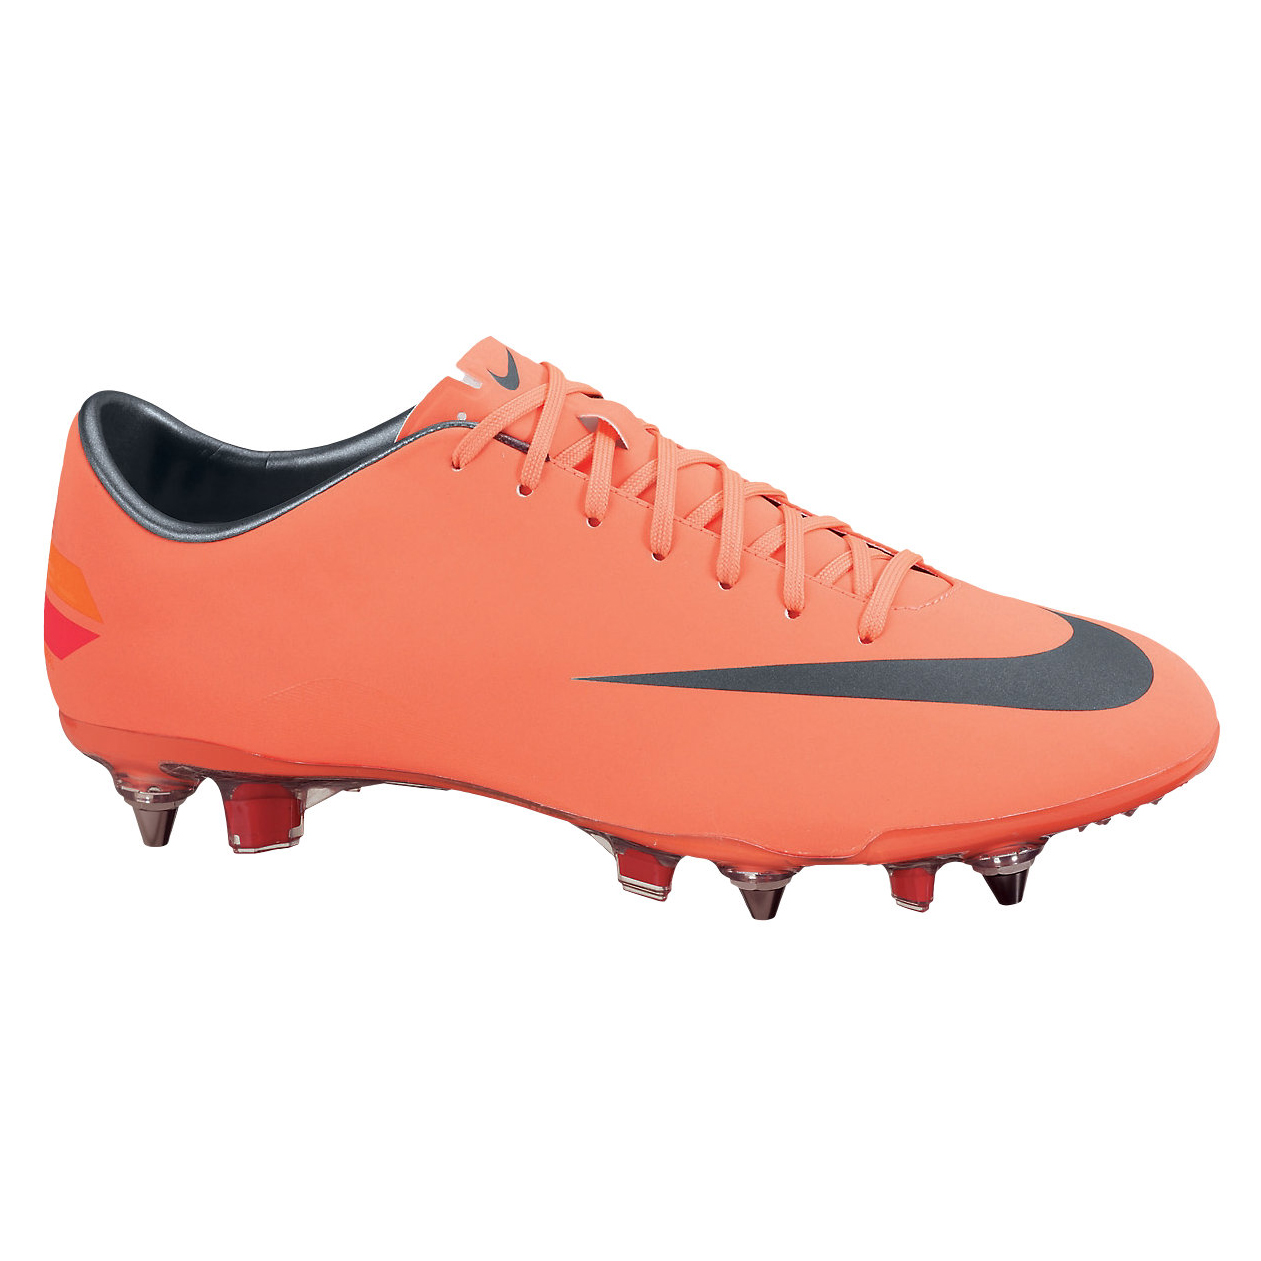 Mercurial Vapor VIII SG Pro Bright Mango/Metalic Dark Grey